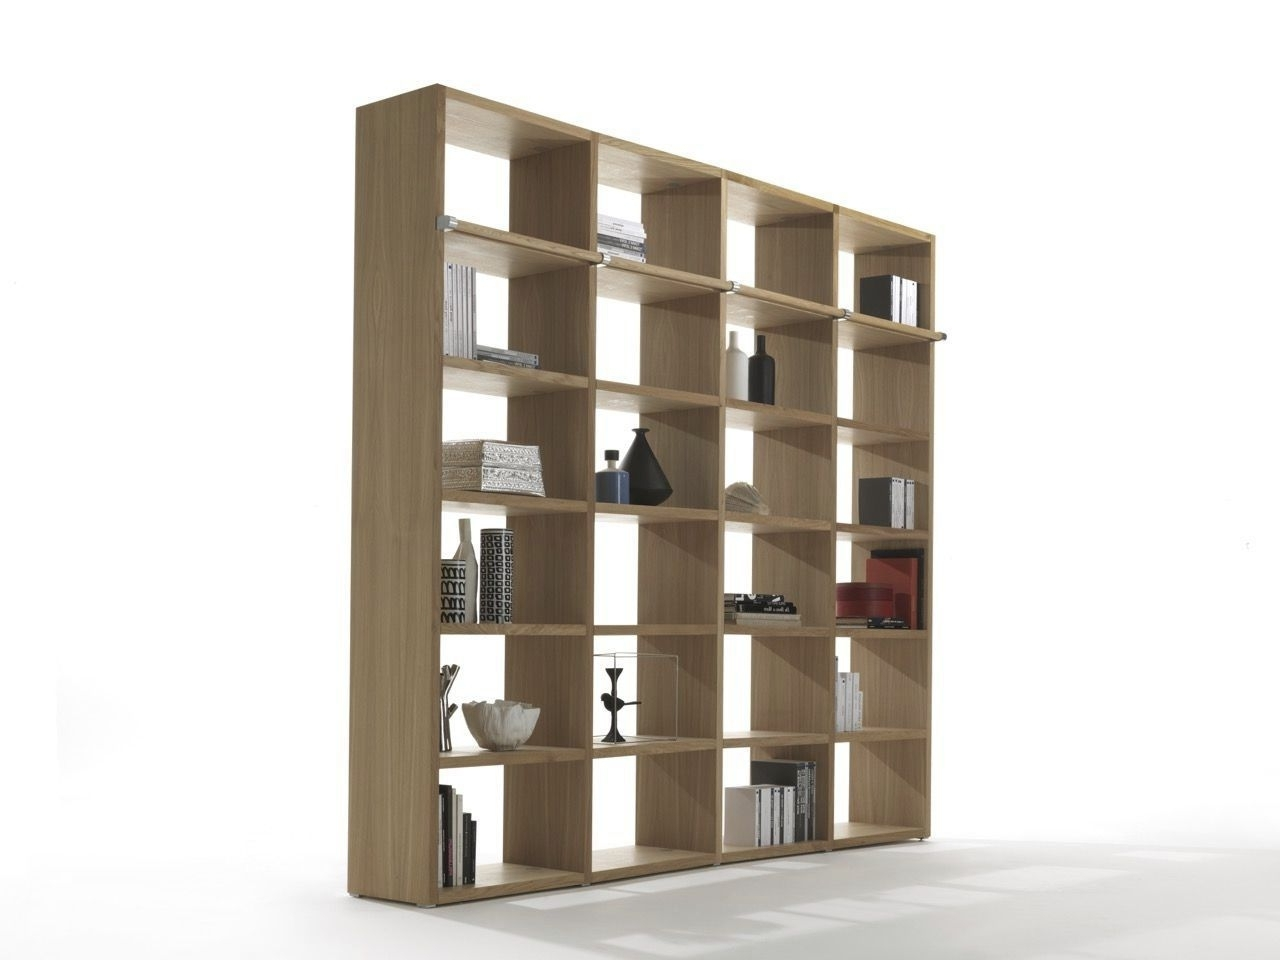 Most Current Modular Bookcases Pertaining To Modular Bookcase / Contemporary / Oak / Solid Wood – Wallstreet (View 11 of 15)